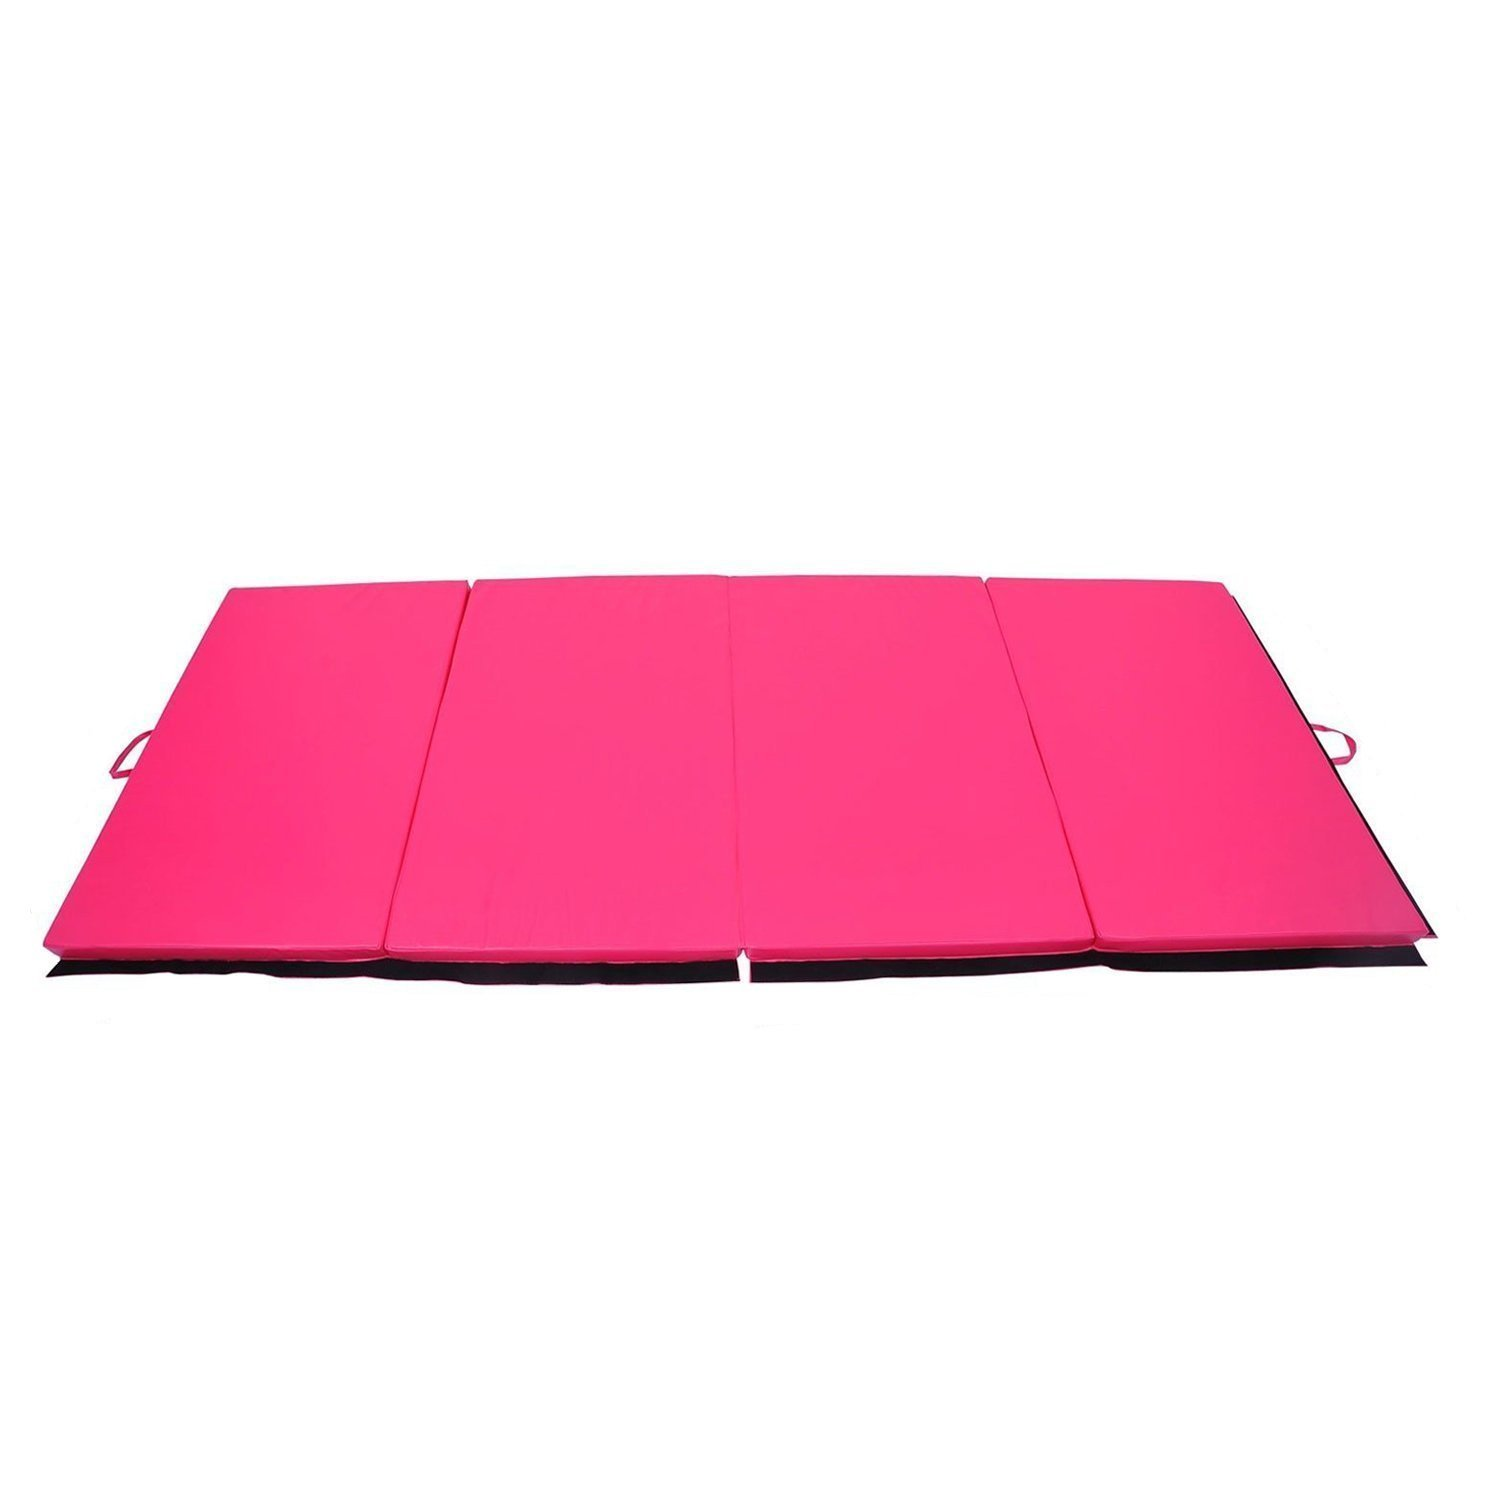 mats and product mat customized detail color buy for inflatable air tumble size gymnastics track tumbling